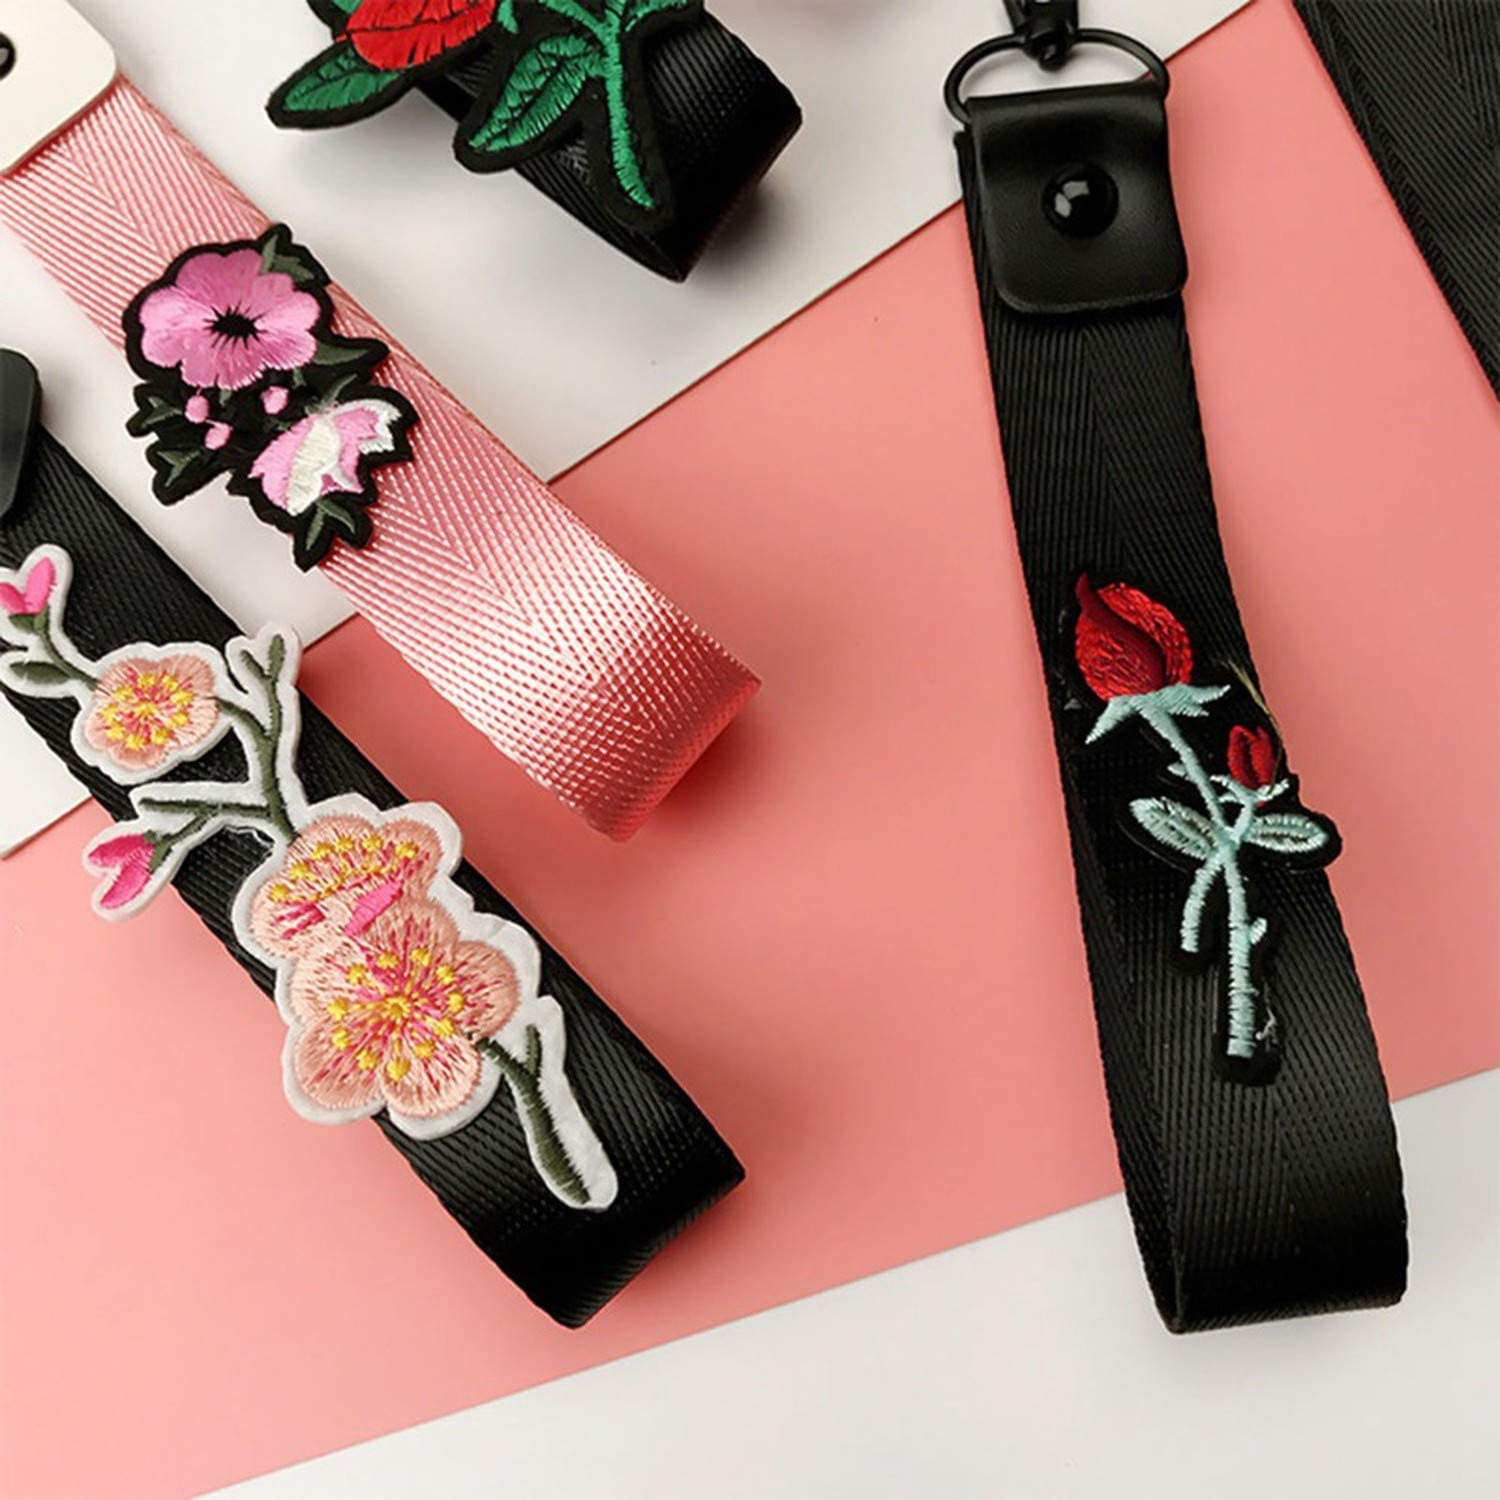 Mobile Phone Strap for One Plus 5T Rose Design Phone Hanging Strap Lanyard for X 8 Lanyard for Key Phone Decoration,7